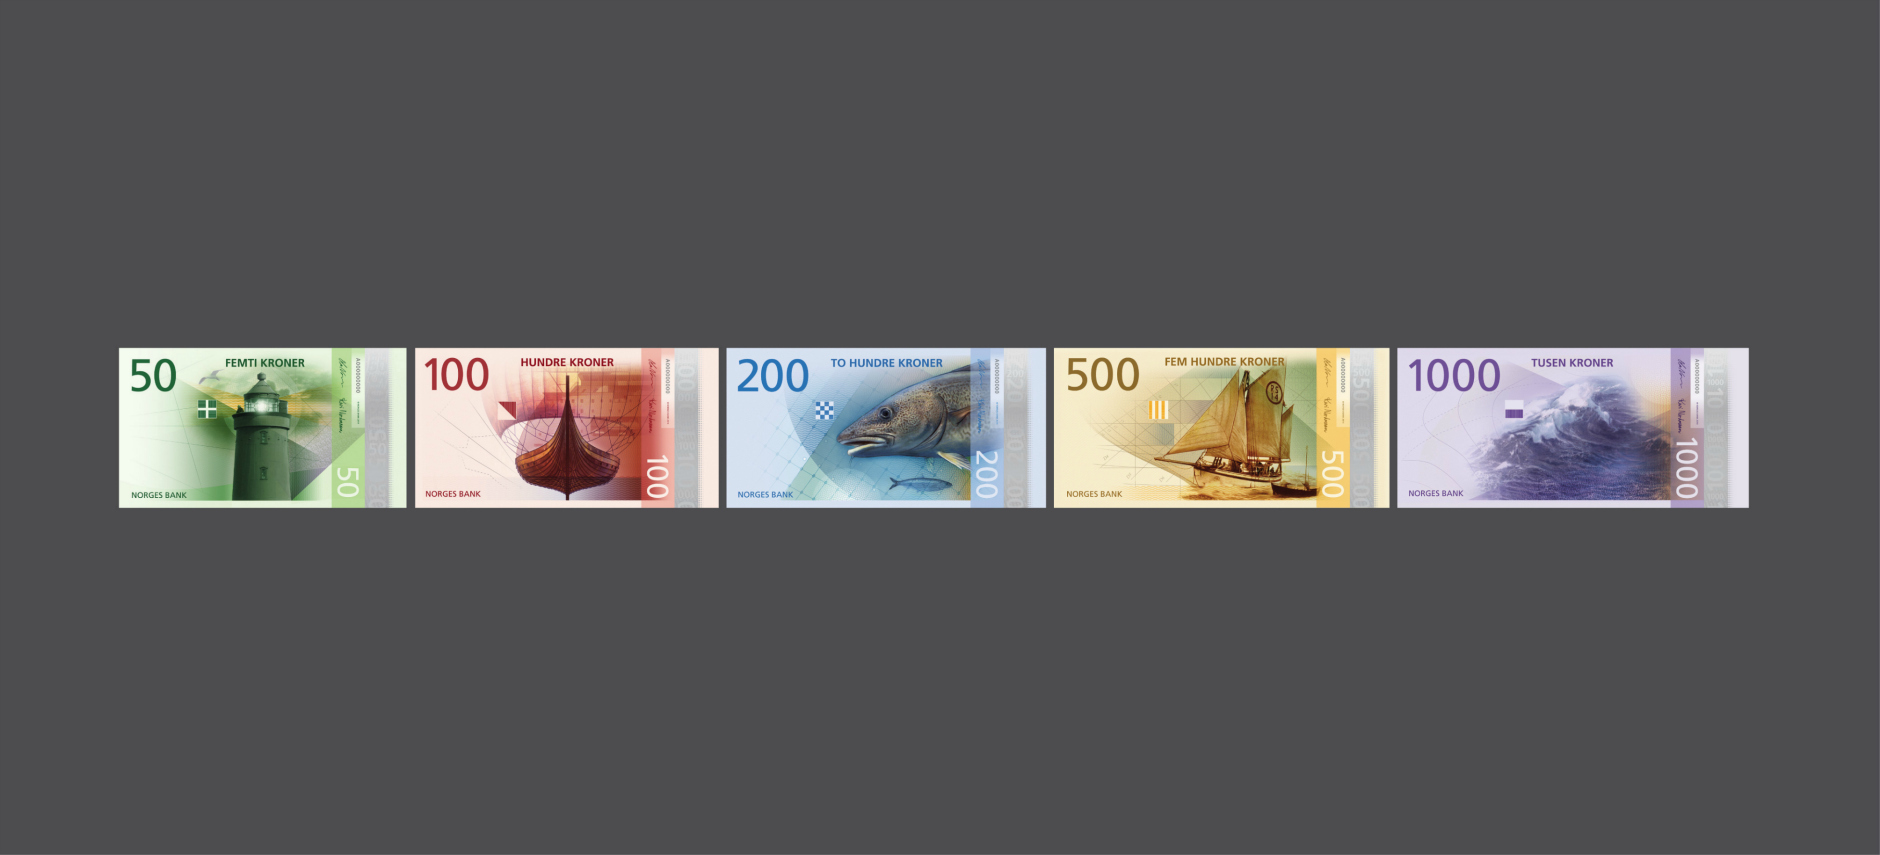 the metric system banknotes